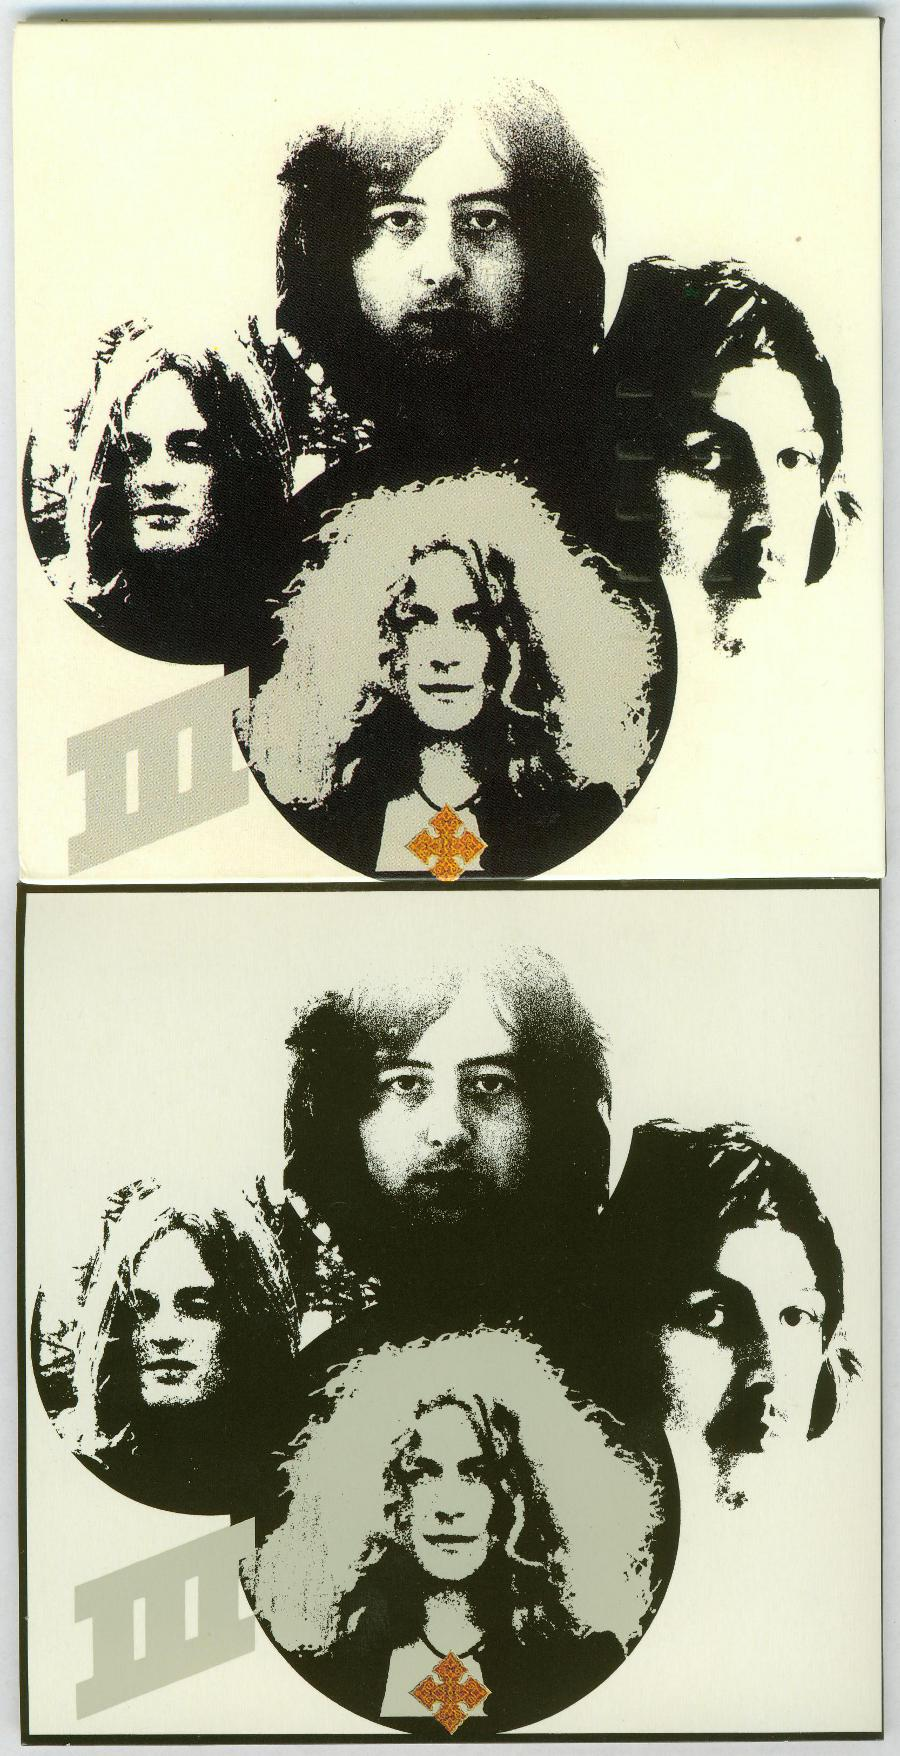 III Back - fake on top - no black border, Led Zeppelin - Fake Led Zeppelin - 40th Anniversary Definitive Collection (Zoso Box)